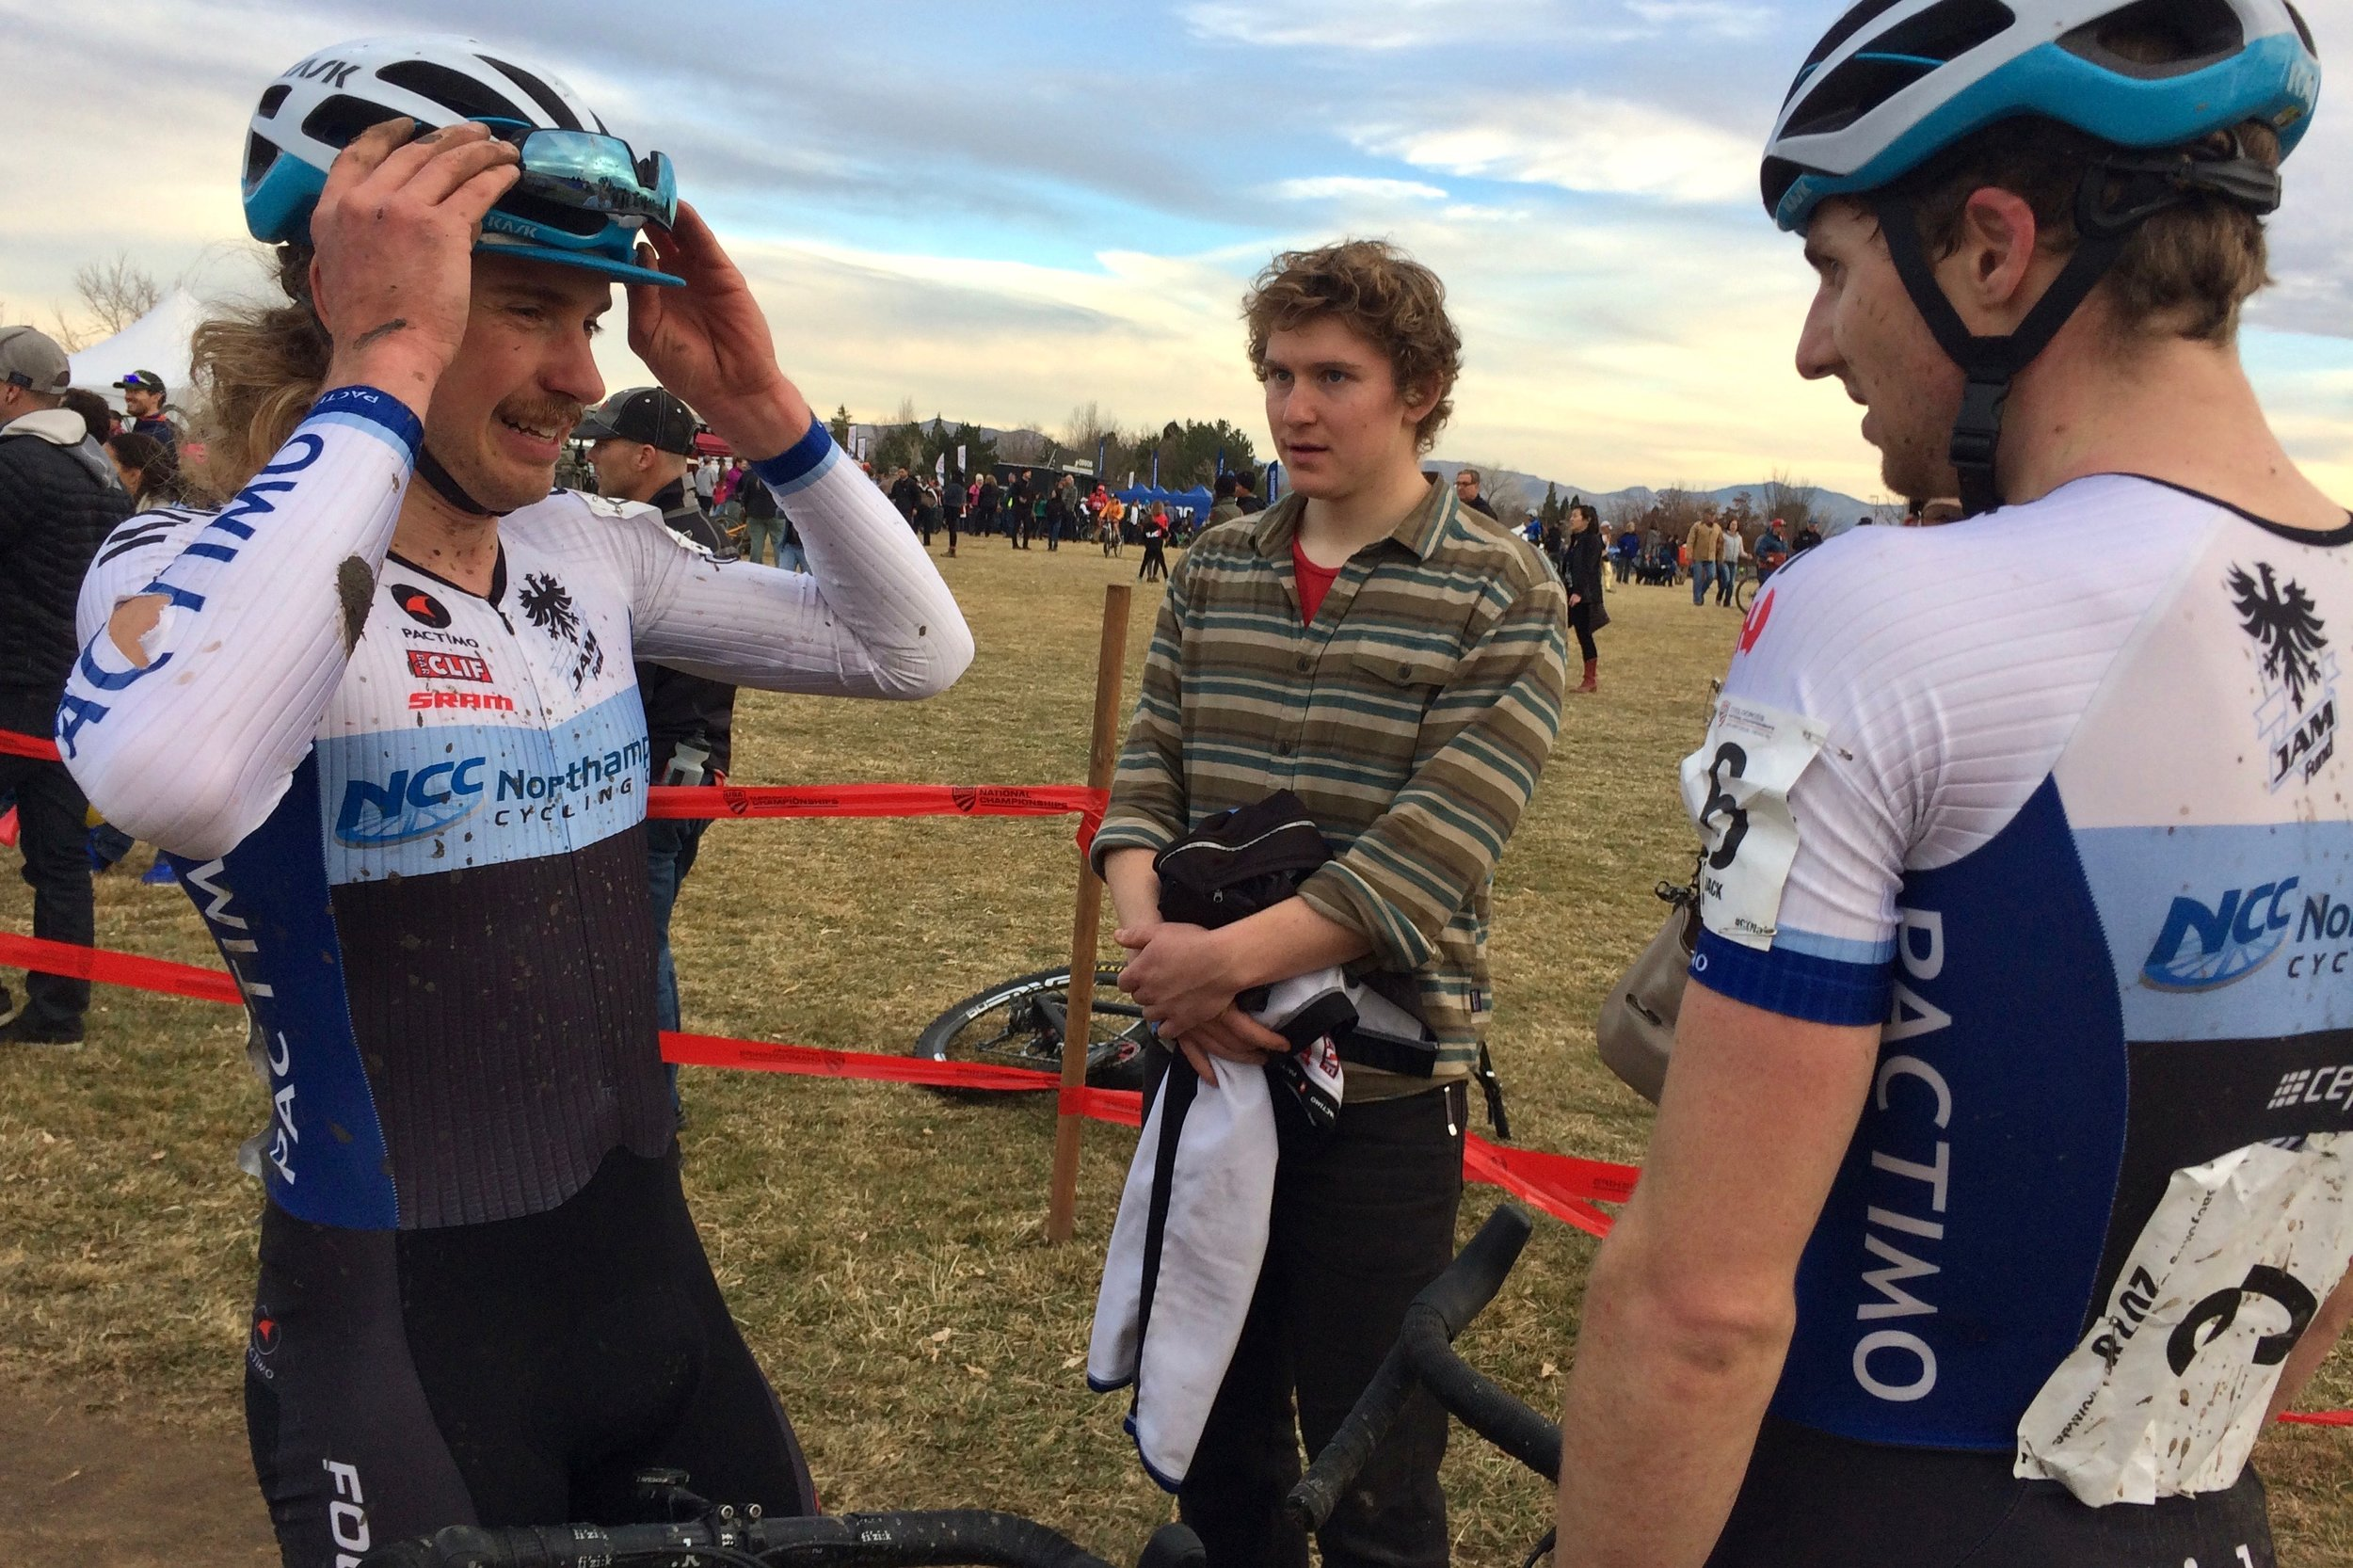 At the end of a wickedly hard and eventful nationals race, Scott Smith and Jack Kisseberth are greeted by teammate Kale Wenzcel who raced earlier in the day. Photo by Vicky Sama.